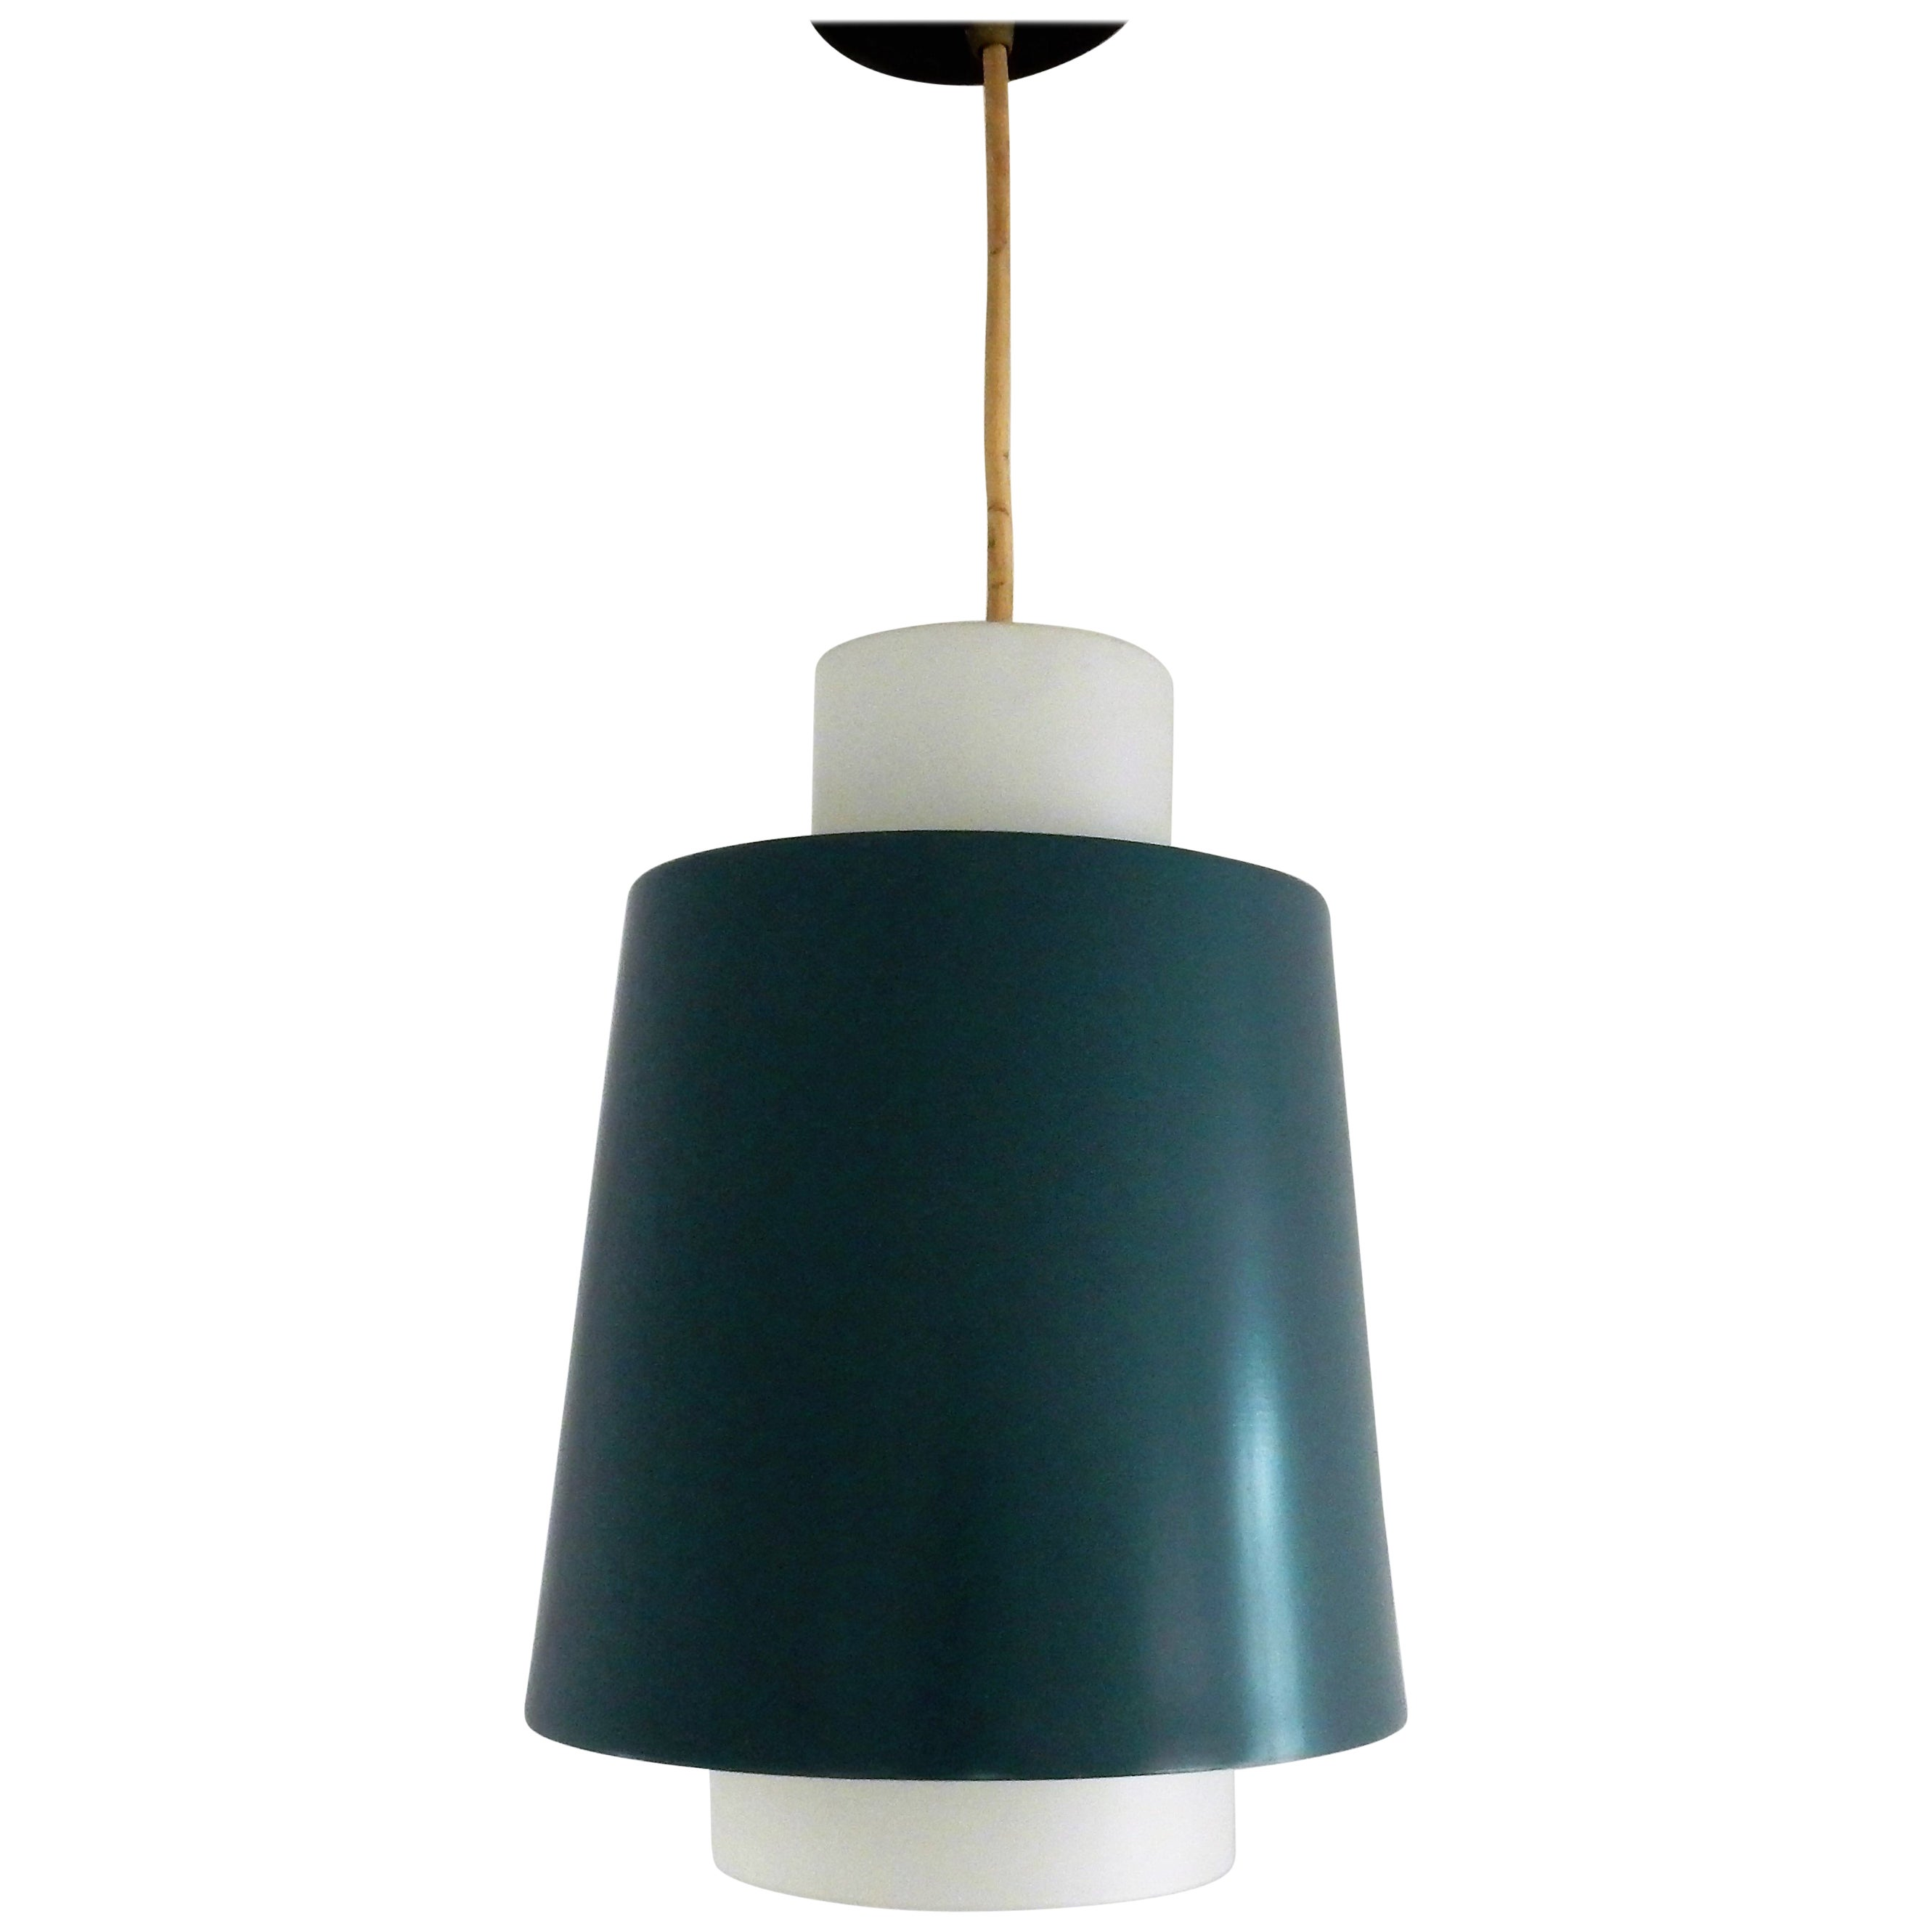 Vintage Blue Metal and White Opaline Glass Pendant Lamp, 1960s